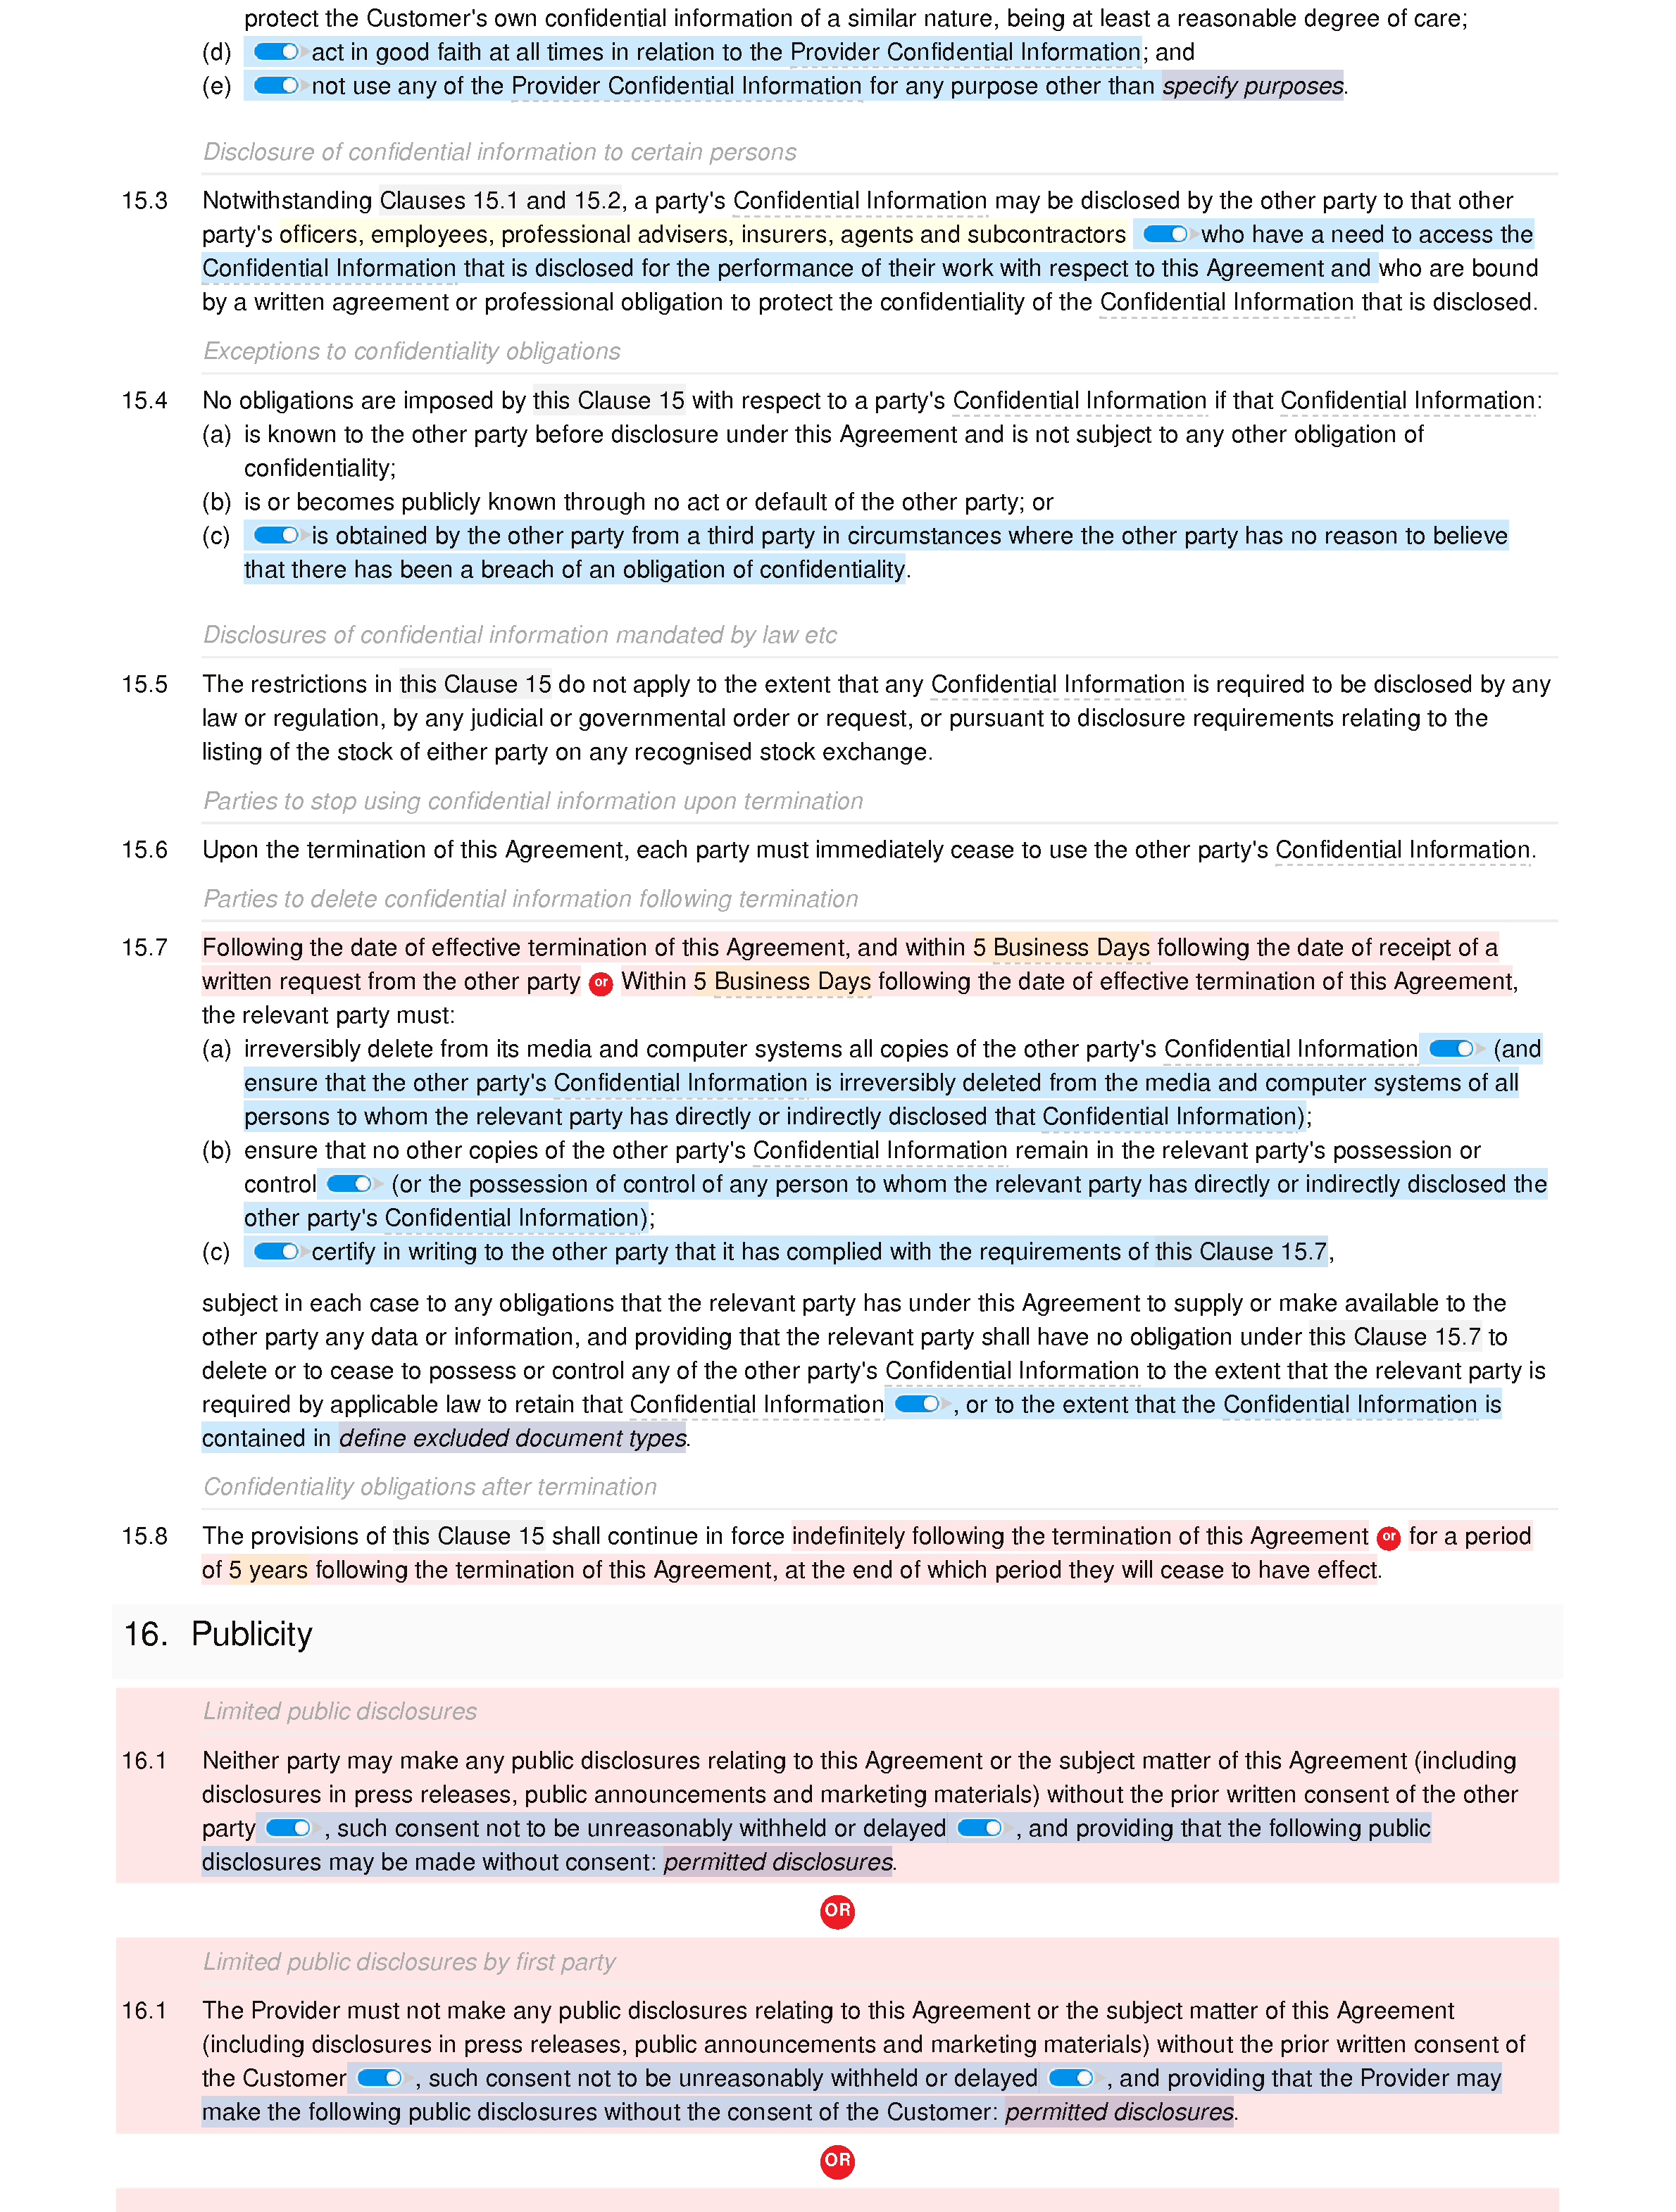 Web services agreement document editor preview